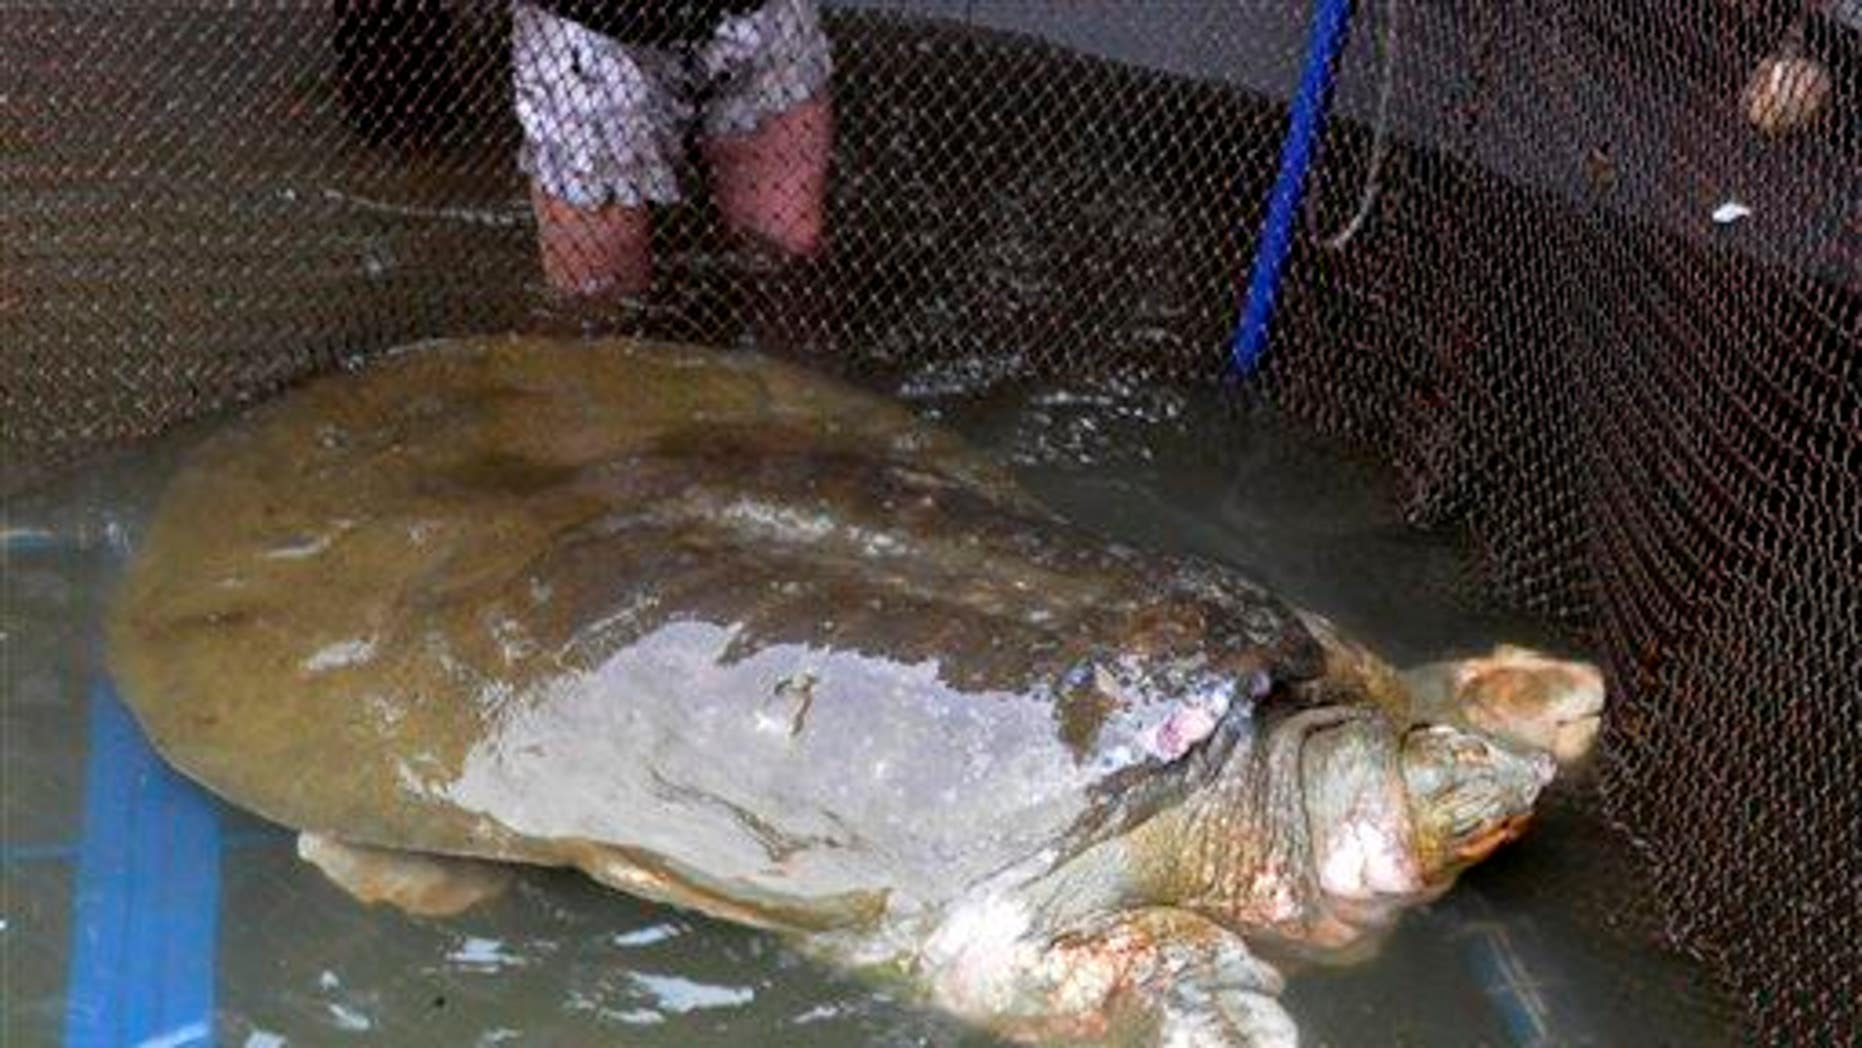 In this 2011 photo, a giant softshell turtle is seen after being pulled from Hoan Kiem Lake in Hanoi, Vietnam.